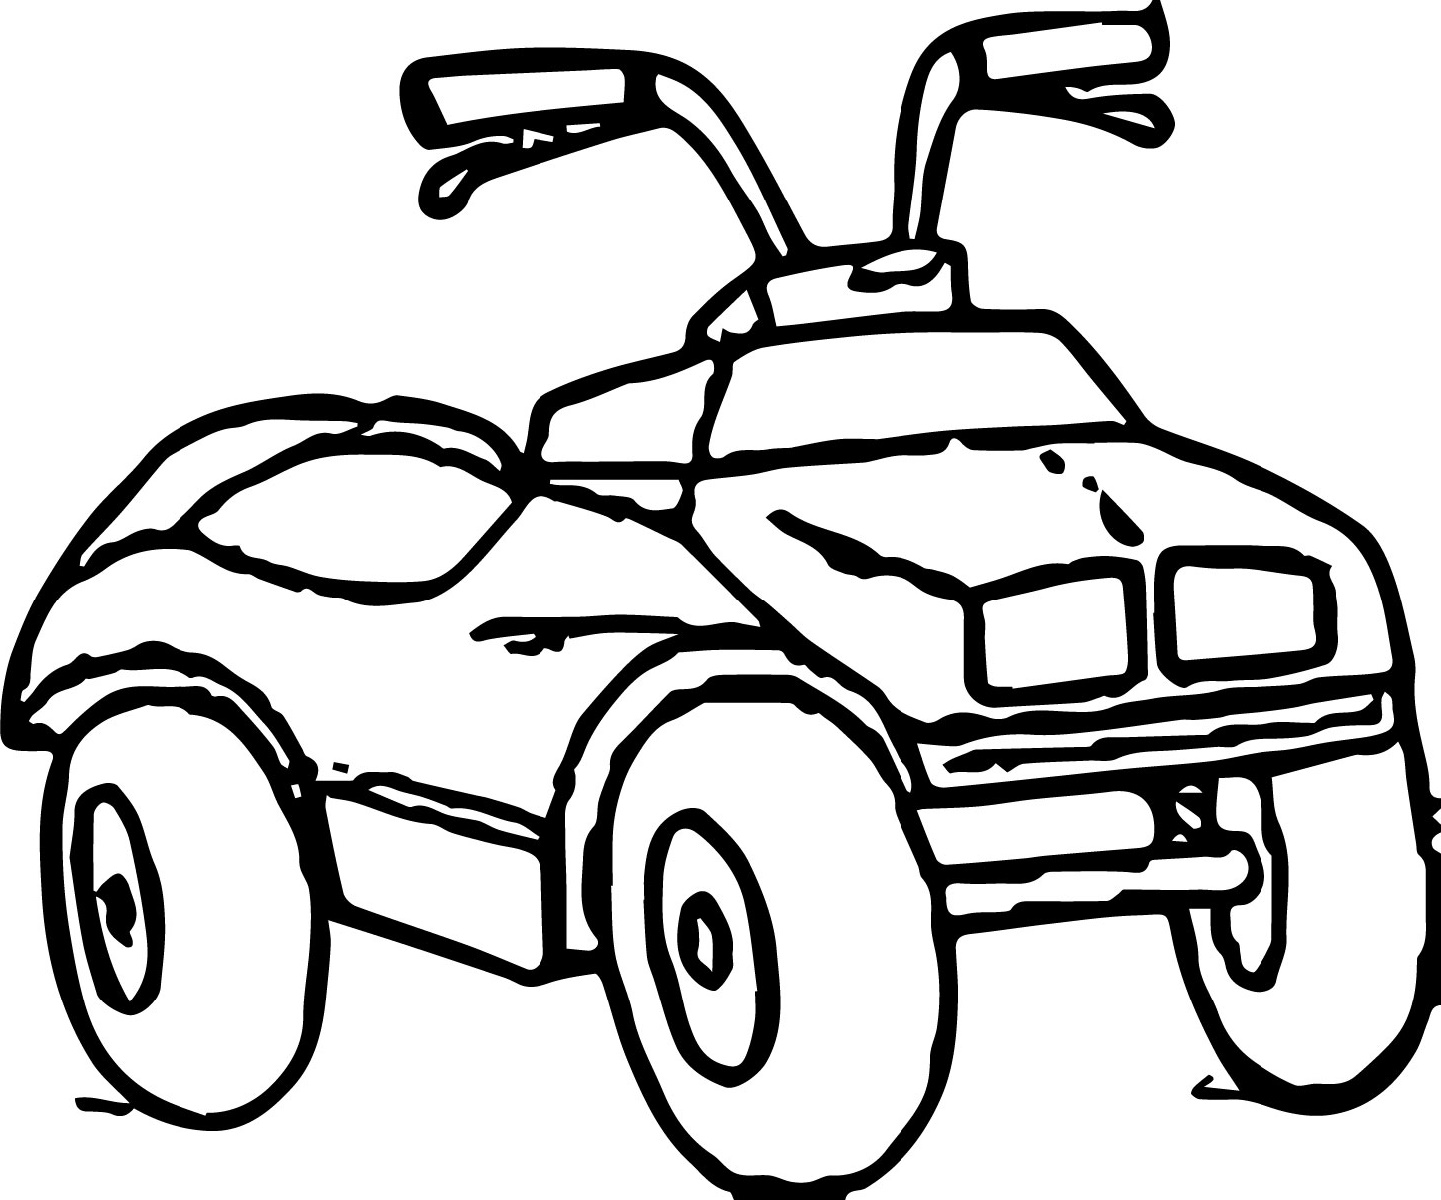 4 wheeler coloring pages four wheeler coloring pages k5 worksheets in 2020 coloring wheeler 4 pages